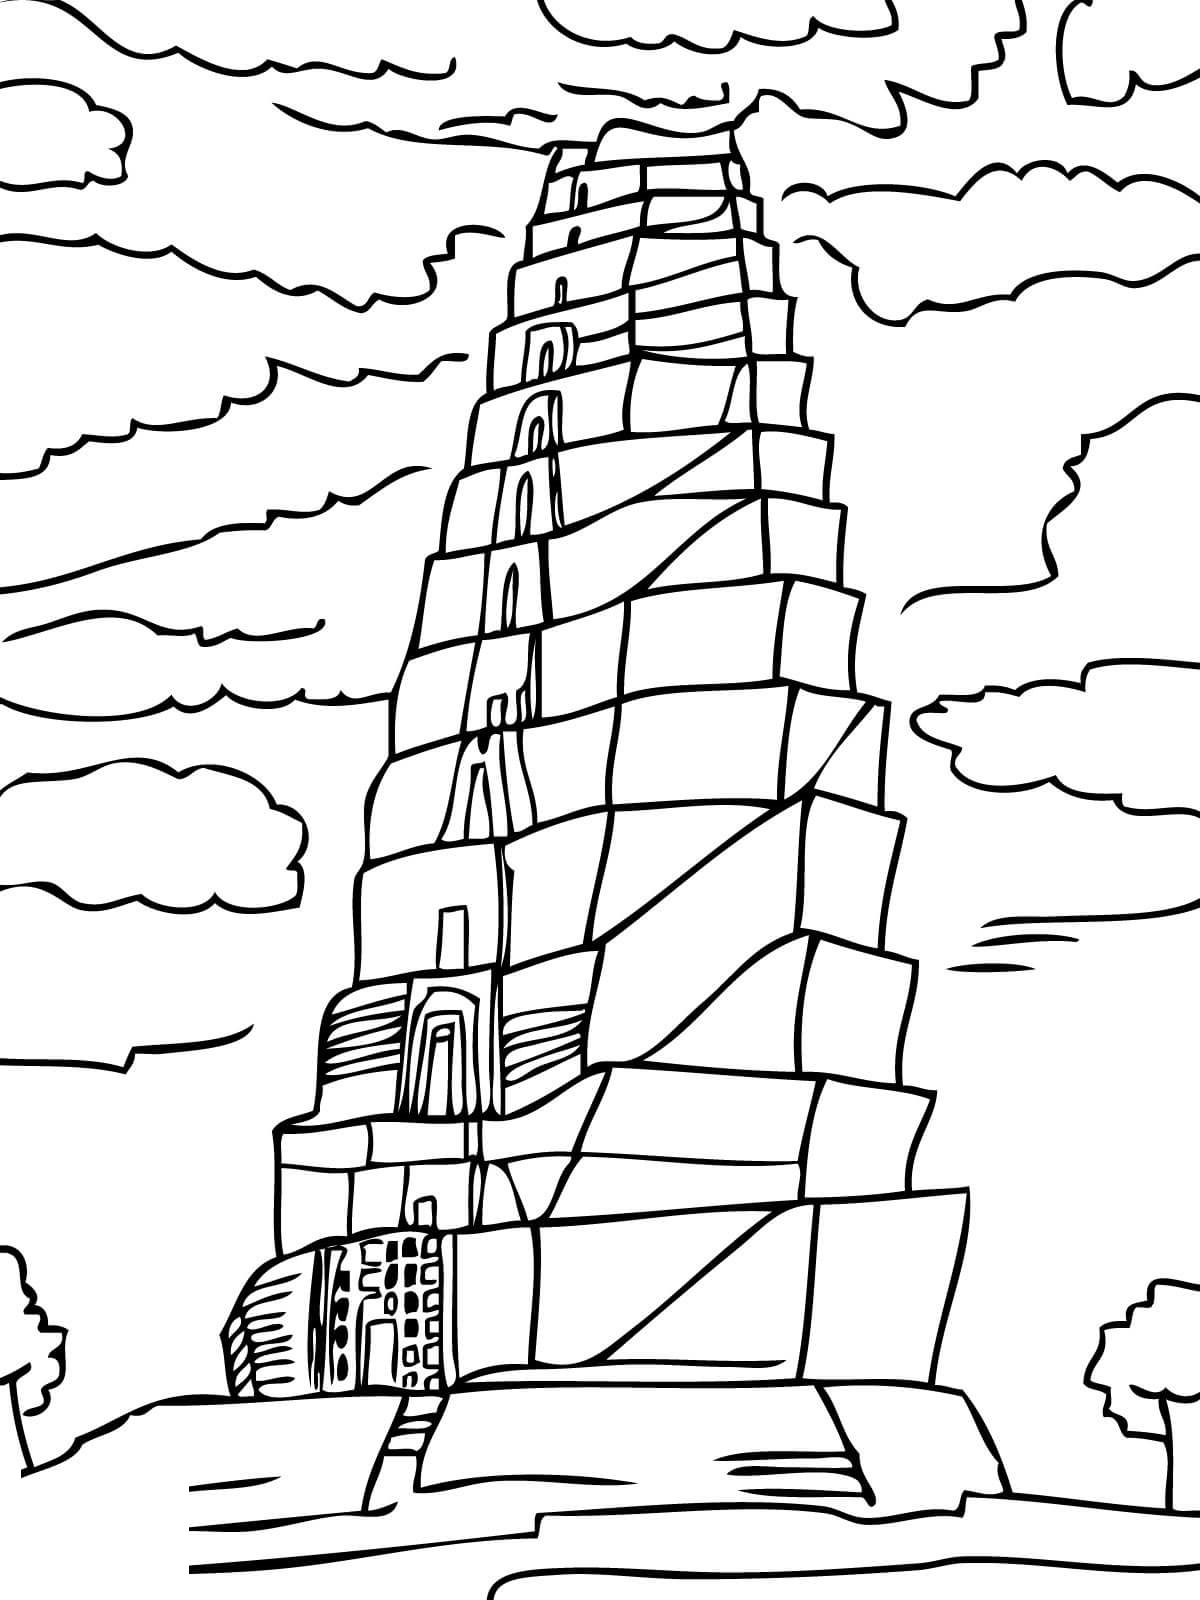 tower of babel coloring sheet 32 tower of babel coloring page in 2020 with images sheet coloring tower babel of